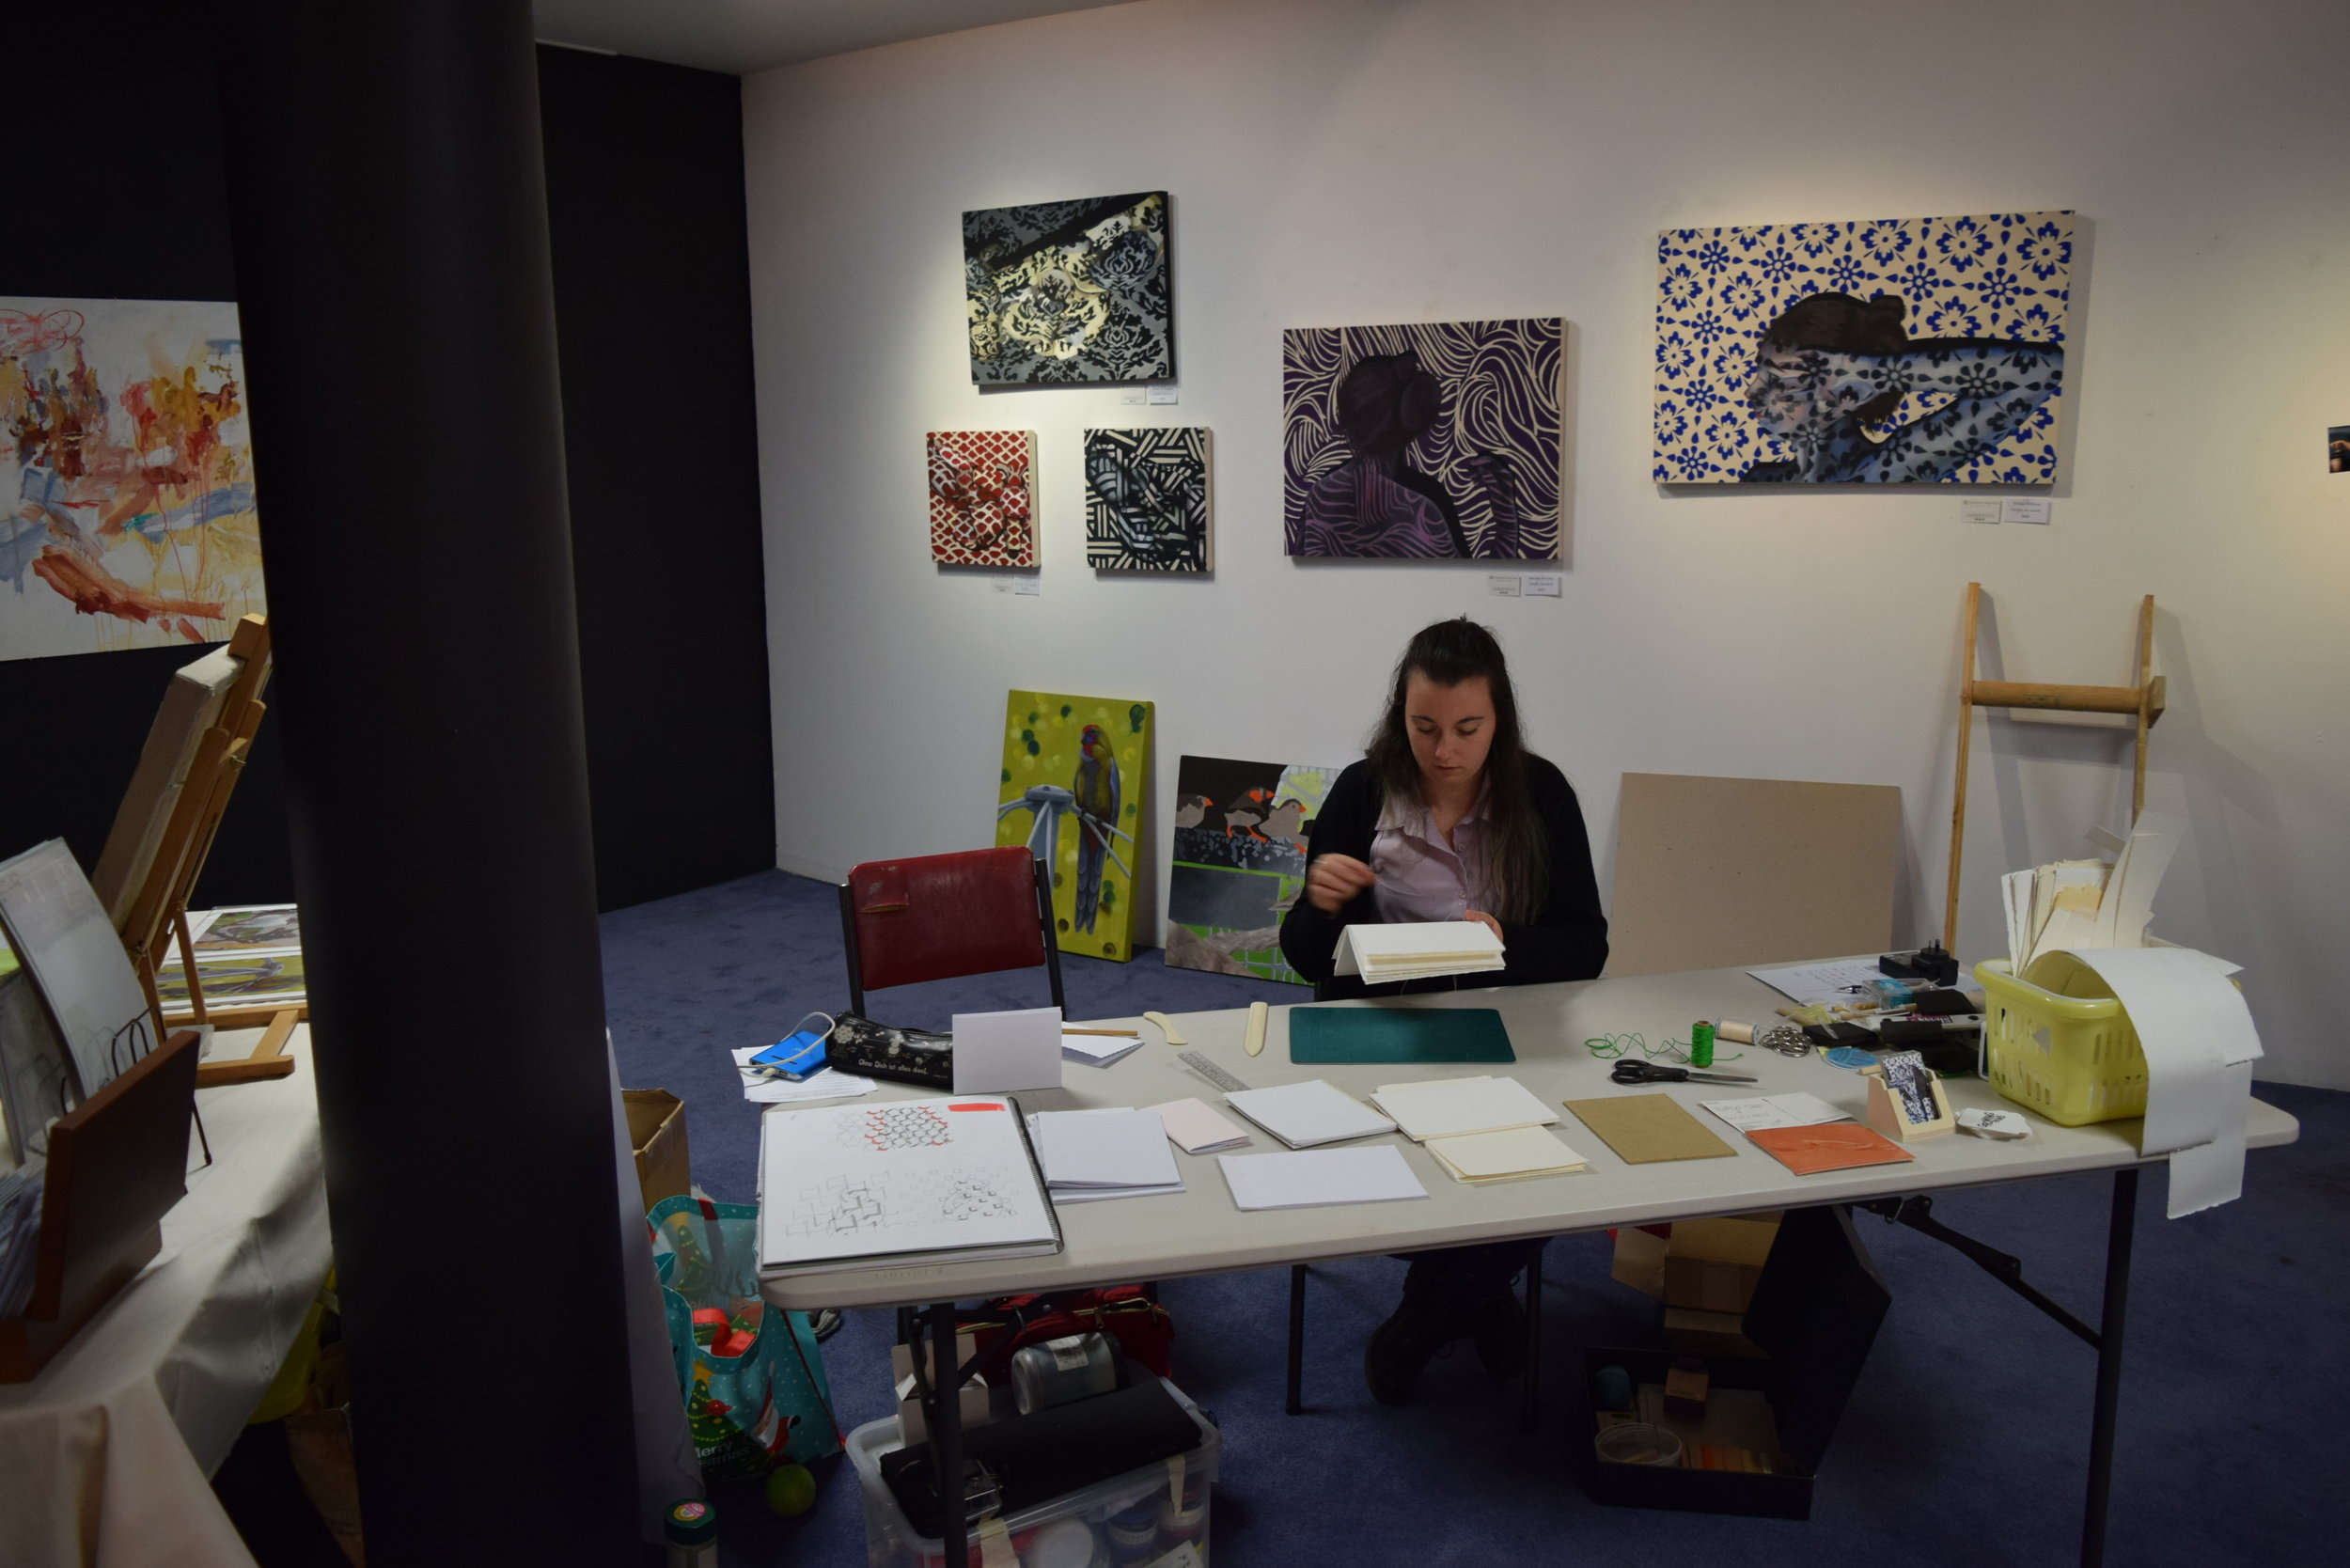 Growing Pains team member Katherine Reynolds doing some bookbinding during Open Studios